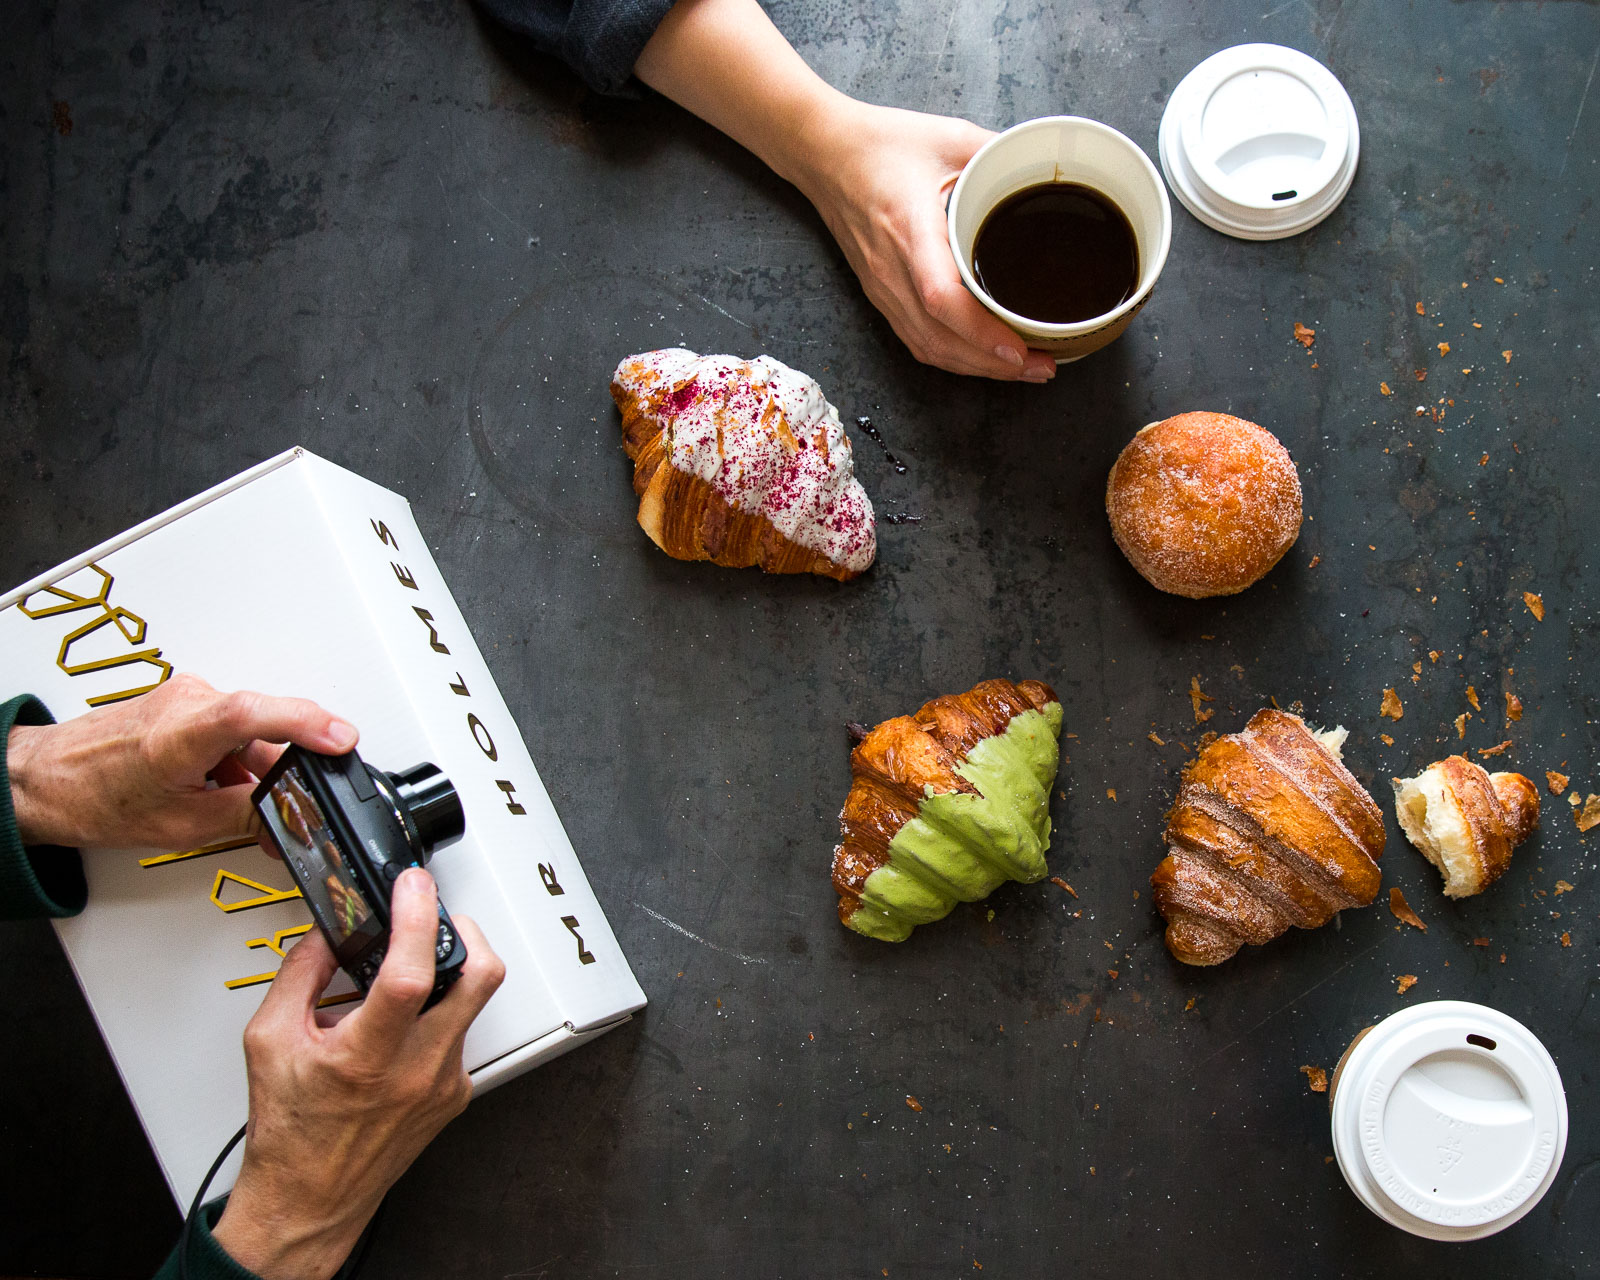 Above:  Our first impromptu food styling / food photography shoot featuring   Mr. Holmes Bakehouse   pastries brought by   Julianna  .    Below:    Alex   and   Sylvie   compose the perfect top down shot of   Mr. Holmes Bakehouse   pastries. /   Ellie   very patiently adding a human element into the scene.